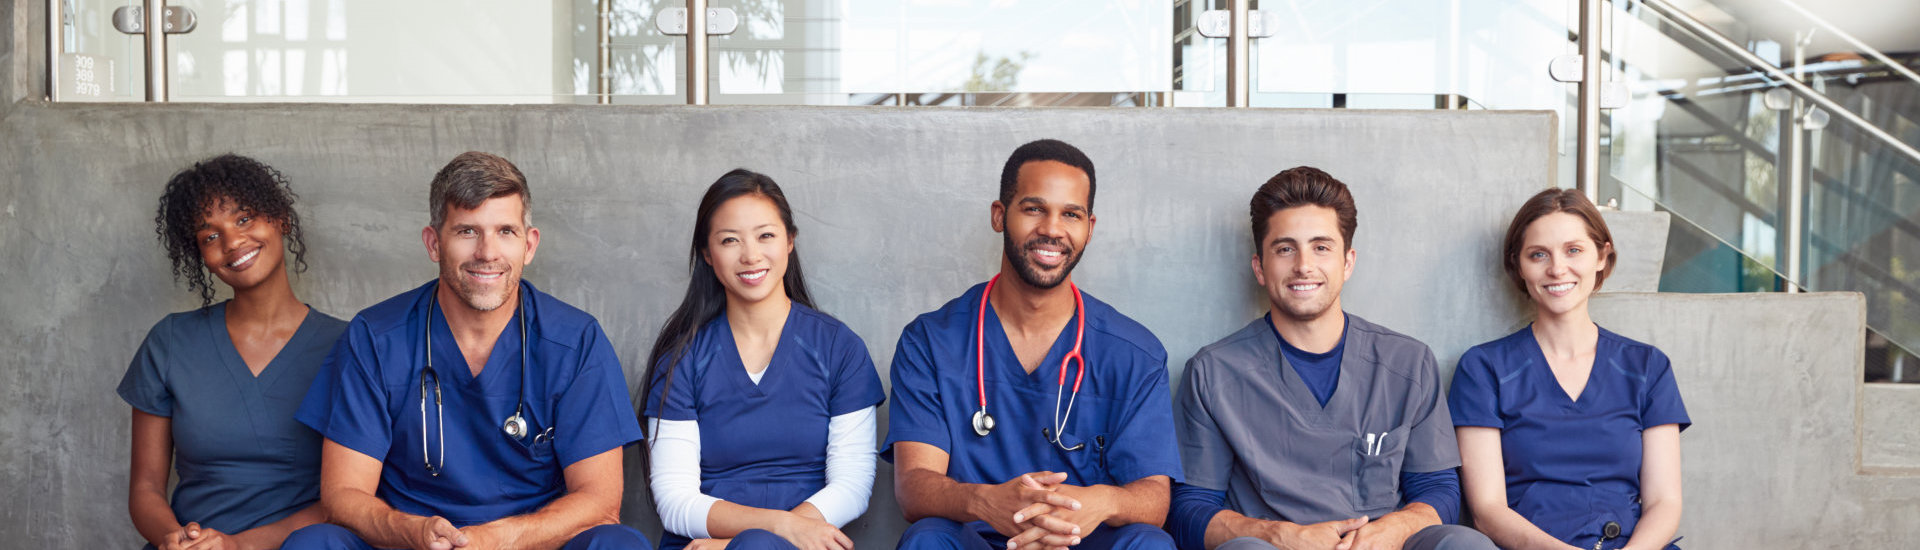 medical professionals sitting on the bench smiling